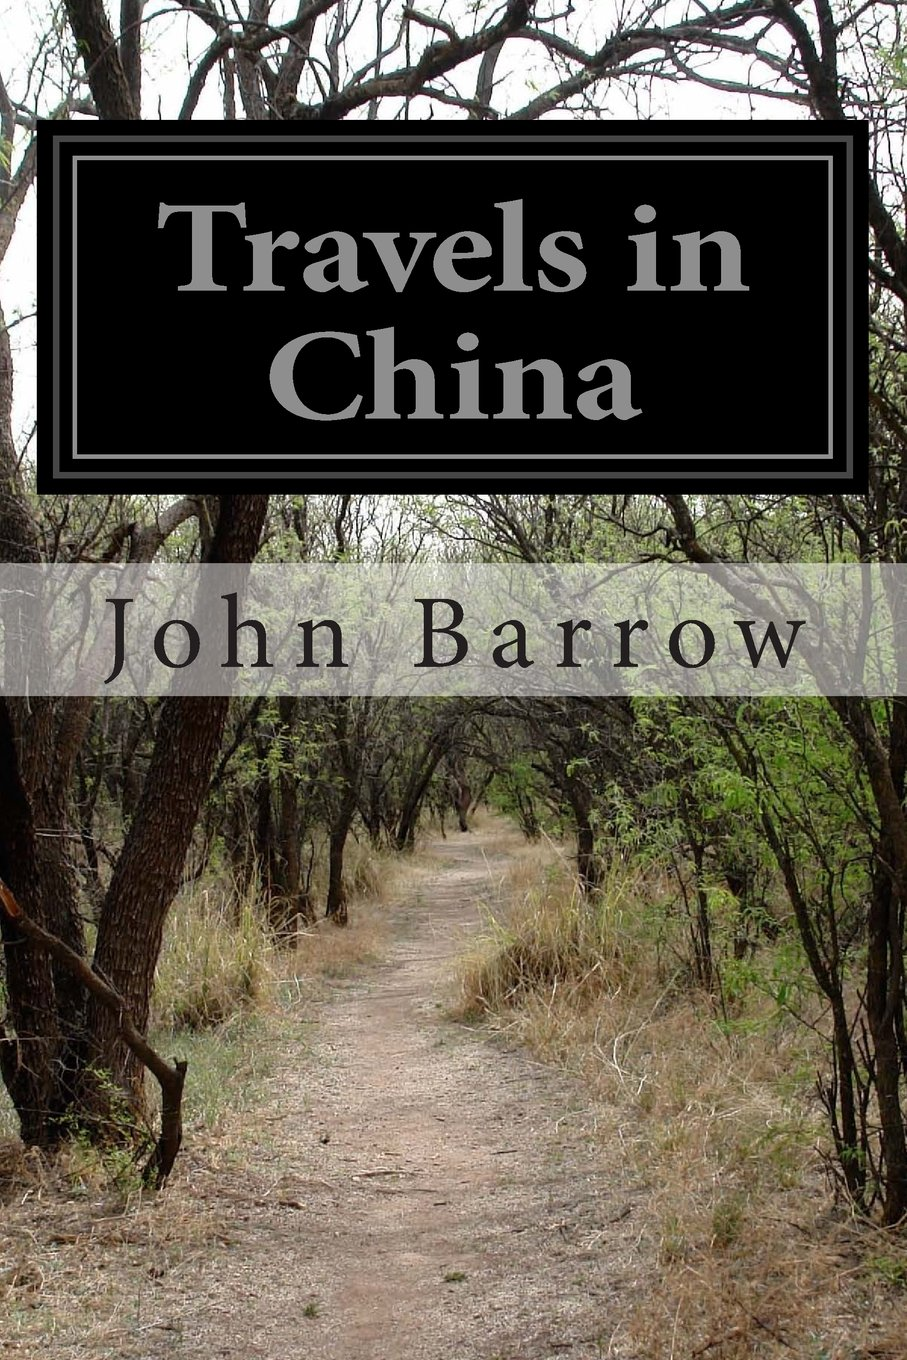 Travels in China: Containing Descriptions, Observations,a nd Comparisons Made and Collected in the Course of a Short Residence at the Imperial Palace Through the Country from Pekin to Canton